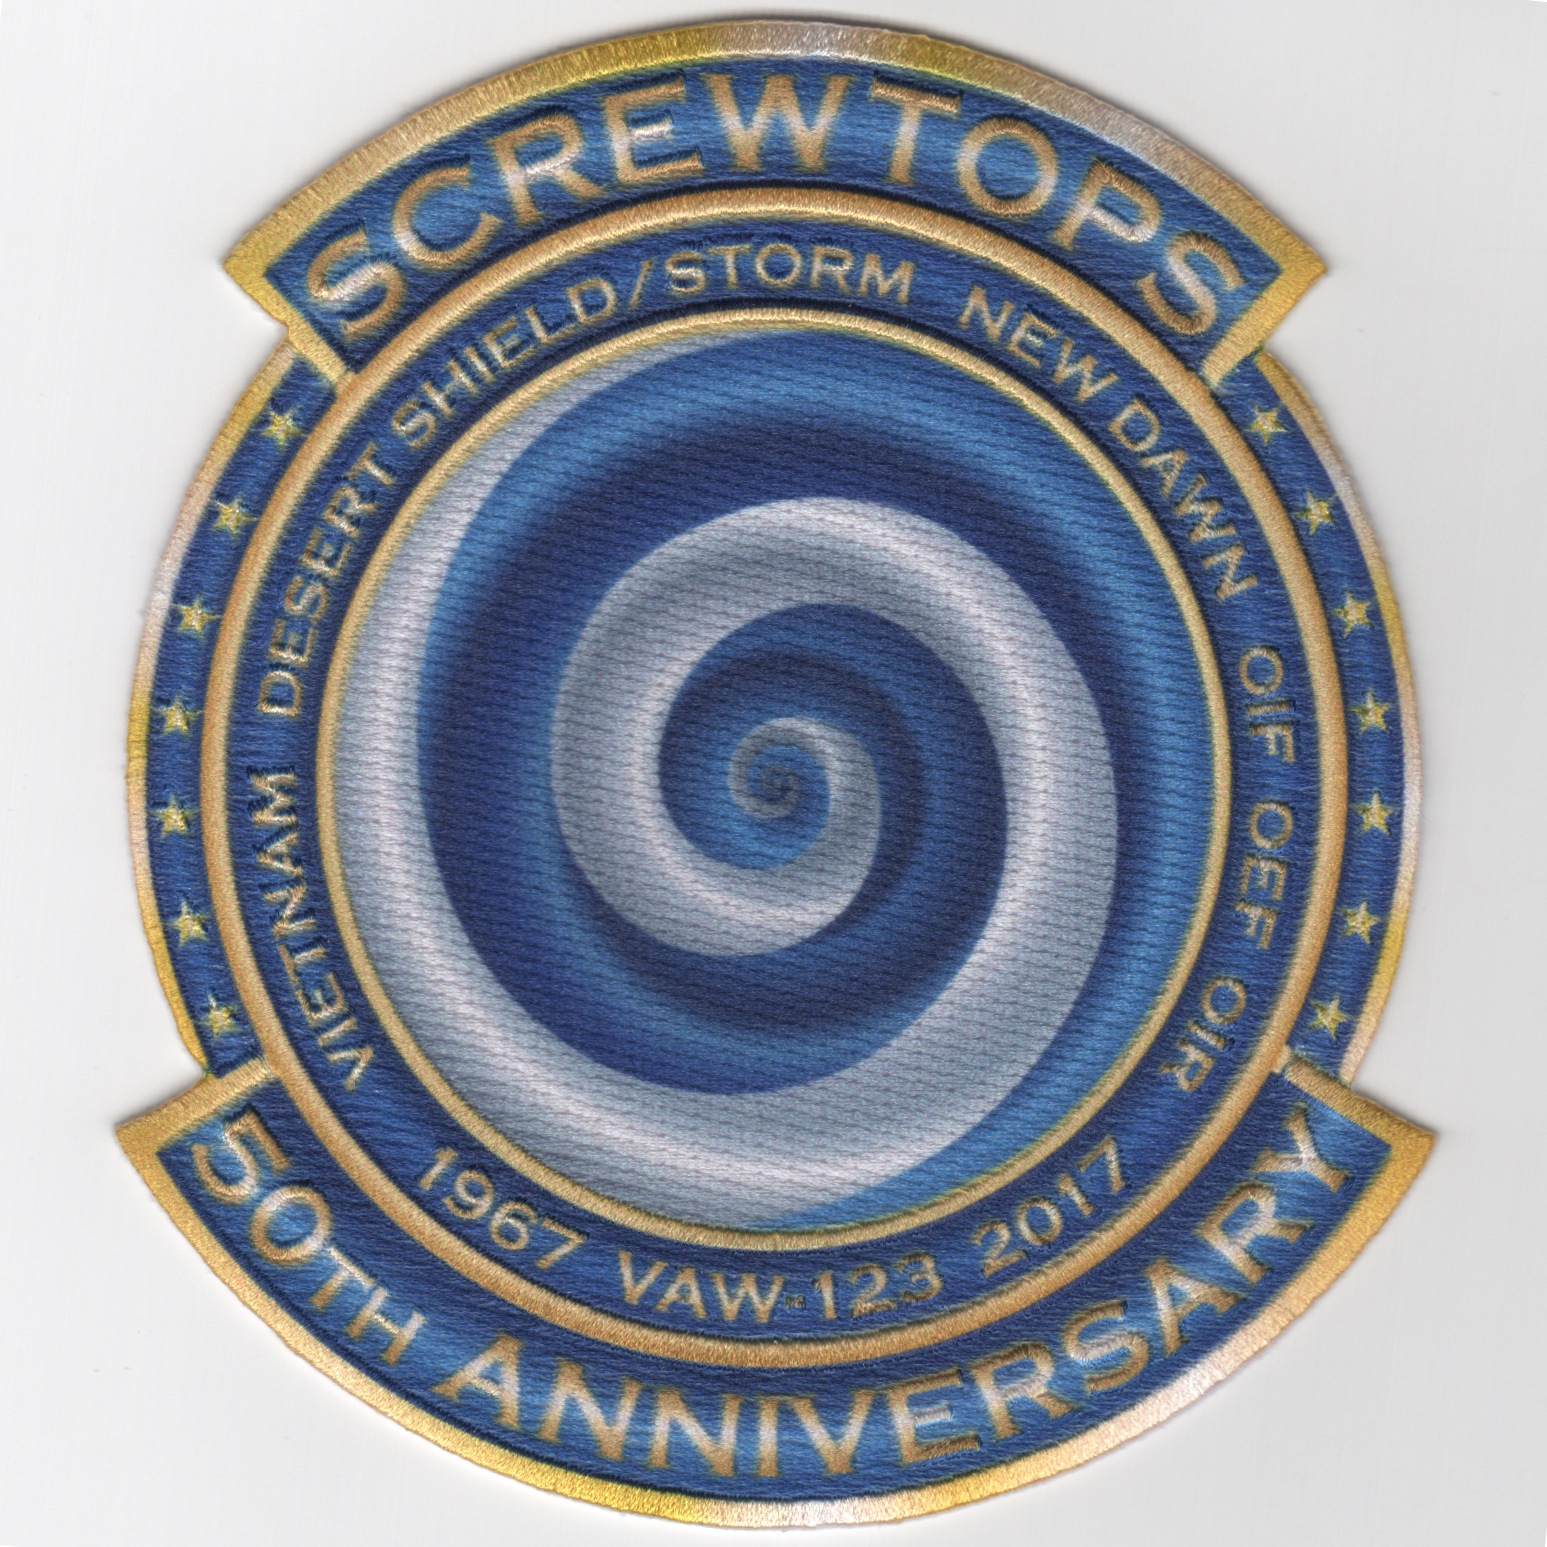 VAW-123 '50th Anniversary Swirl' Patch